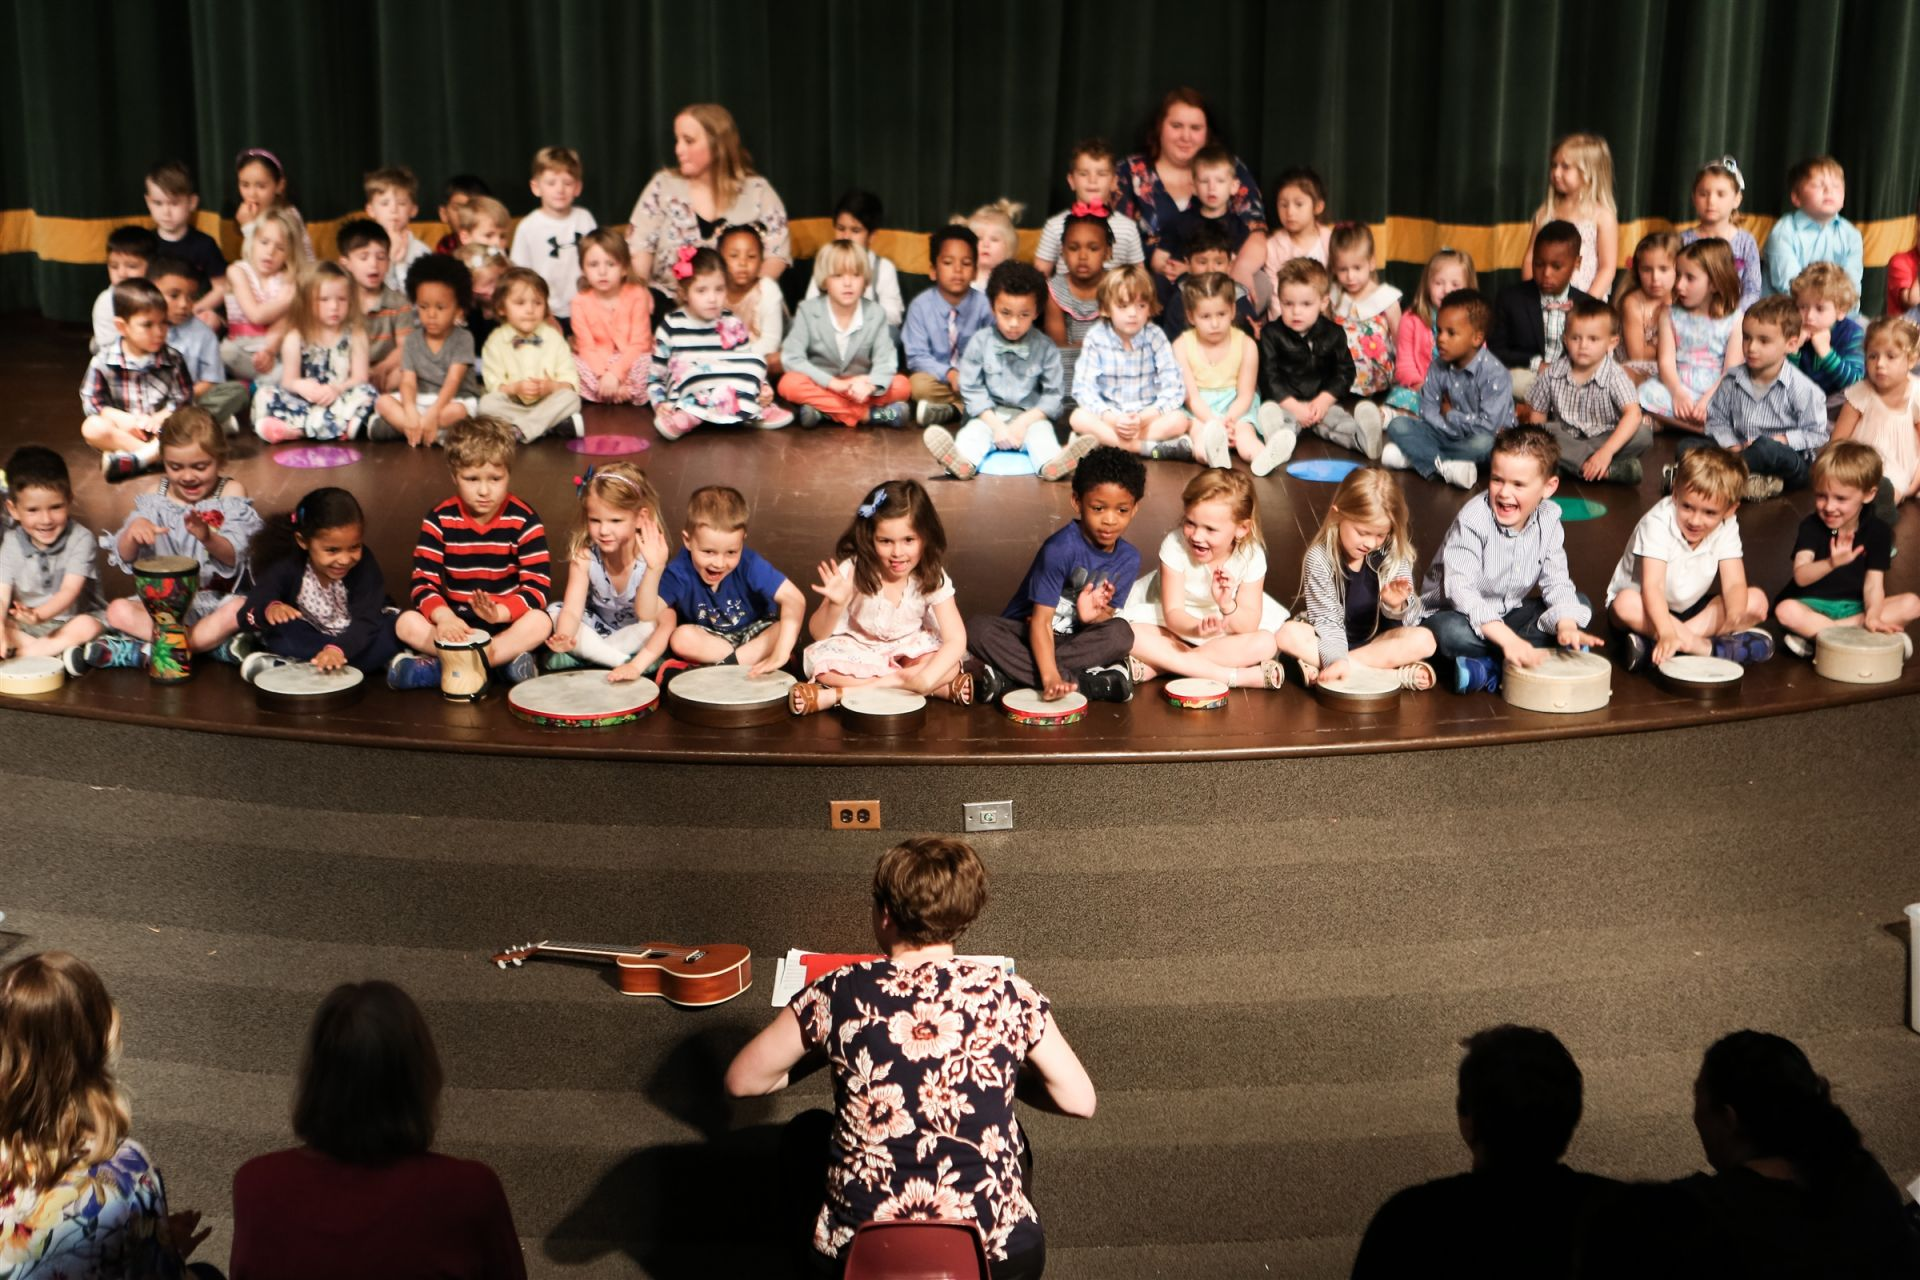 Preschool students perform confidently in front of 200 people in our theater. They debut special classroom songs, and popular childhood classics. They also play hand drums, rhythm sticks, and shaky eggs. These Owls even perform songs in Spanish. Pretty impressive for three, four and five-year olds!